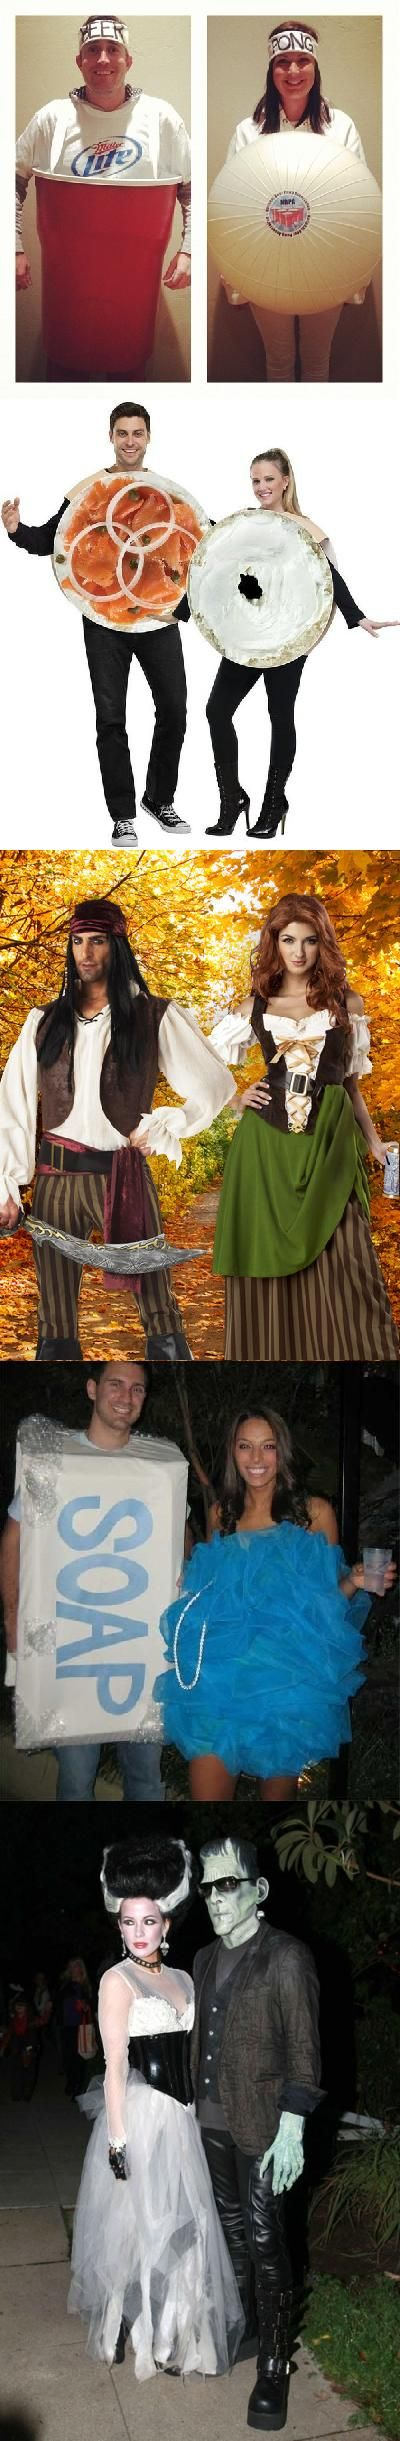 His and her halloween costumes - 6 PHOTO!